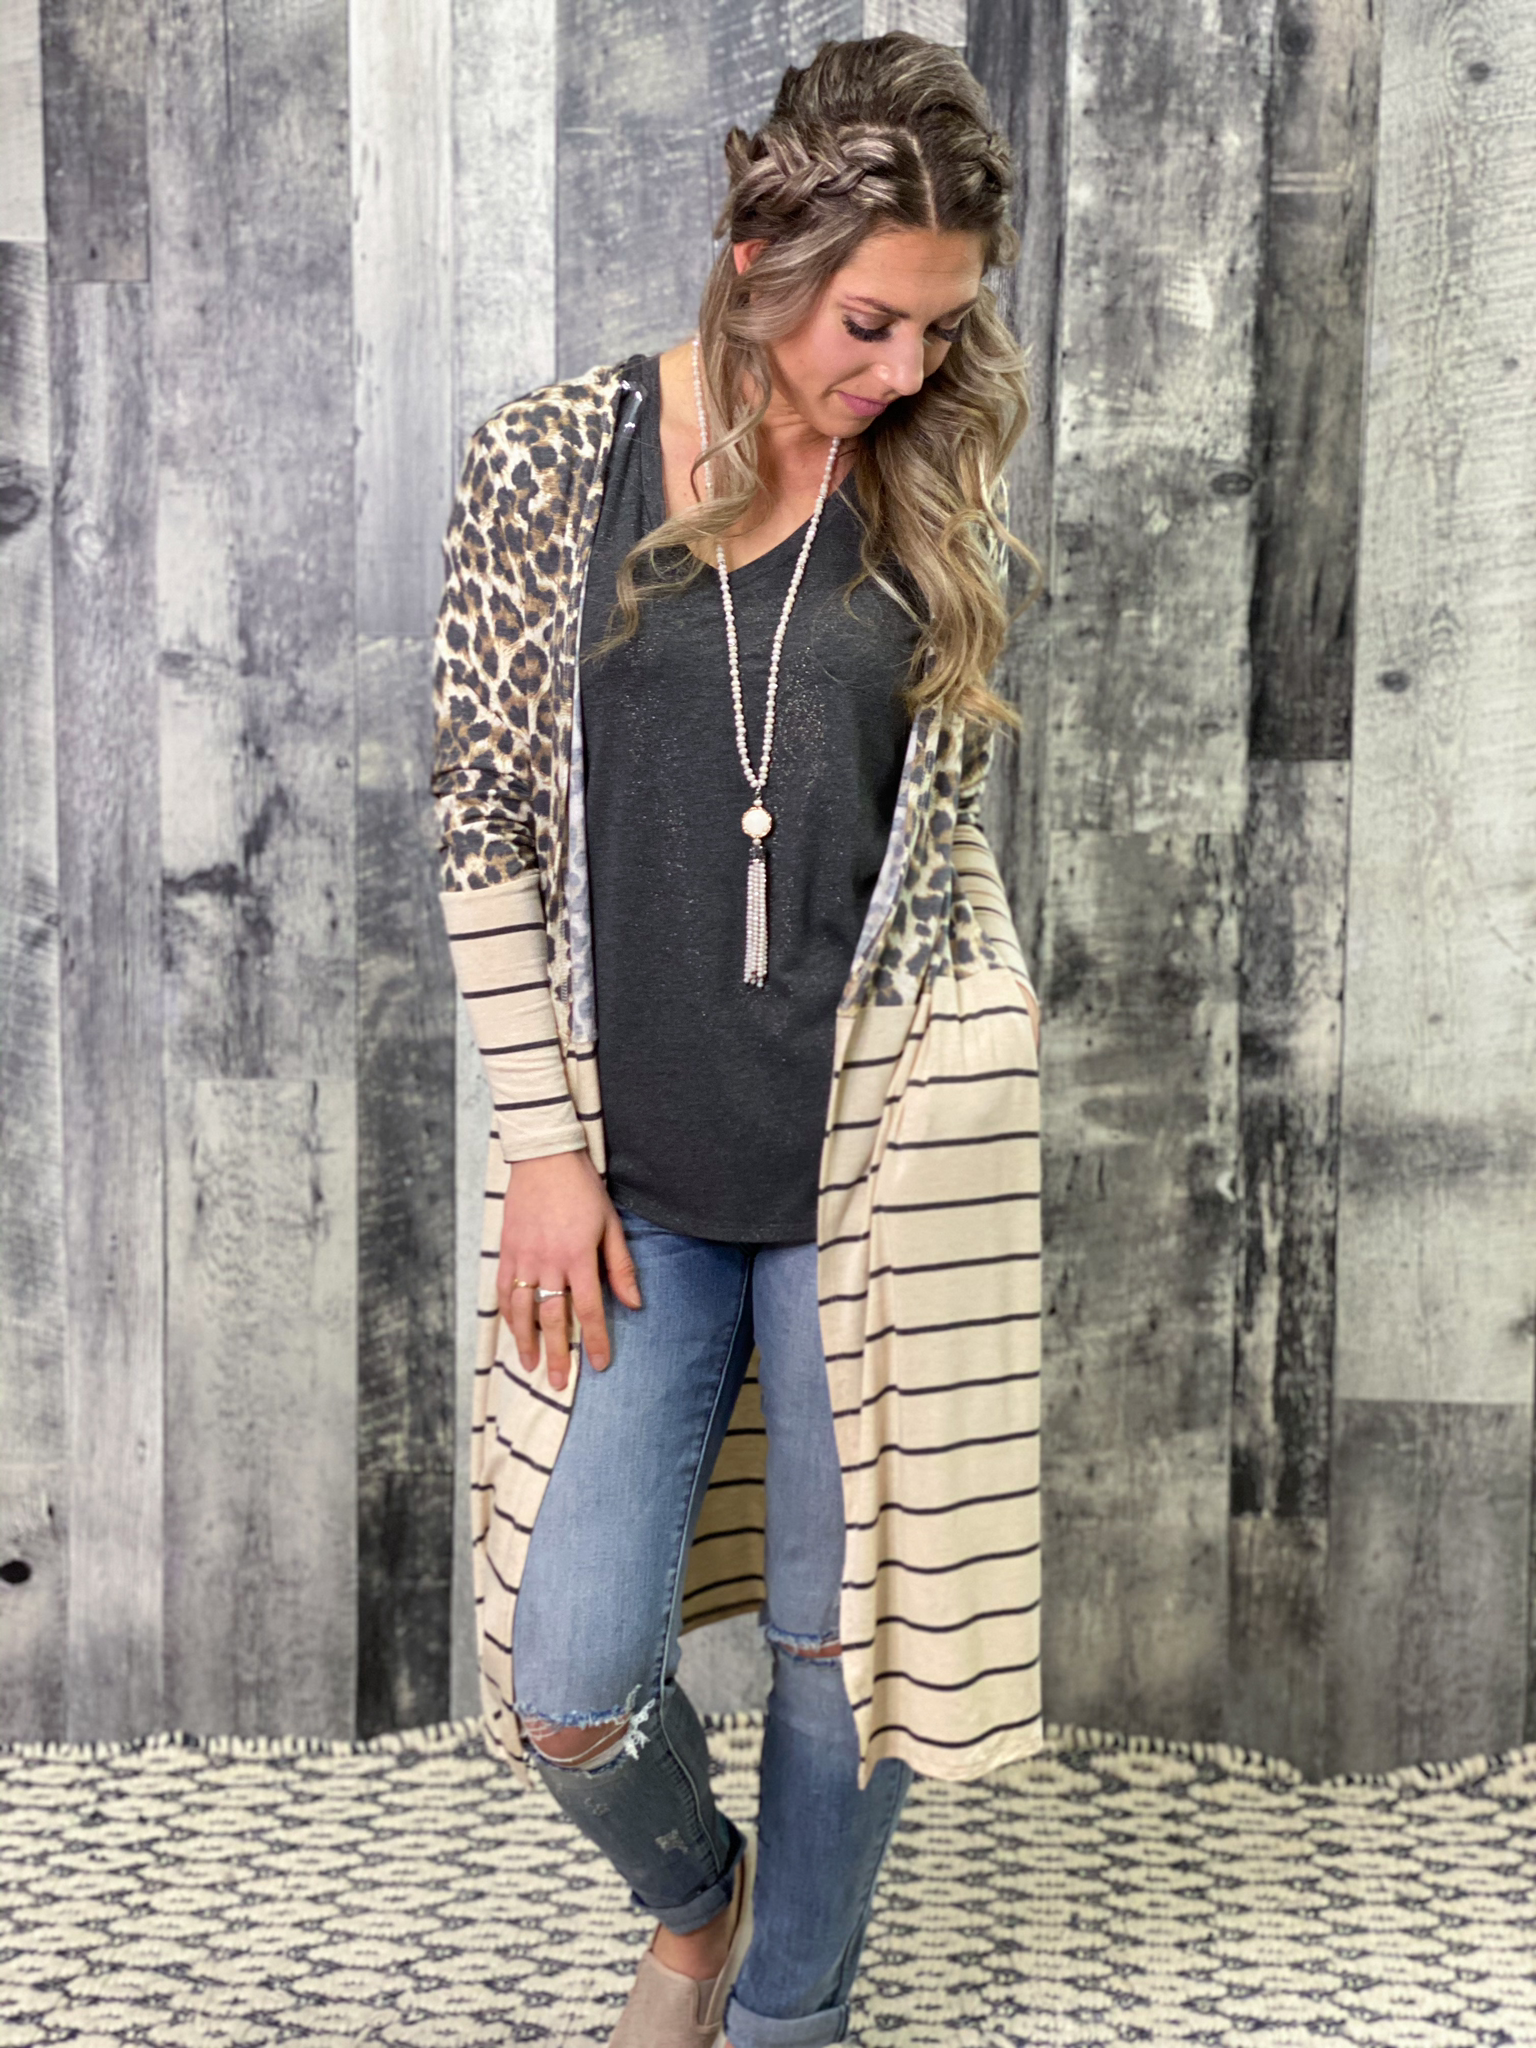 Leopard and Striped Duster Cardigan 46H4